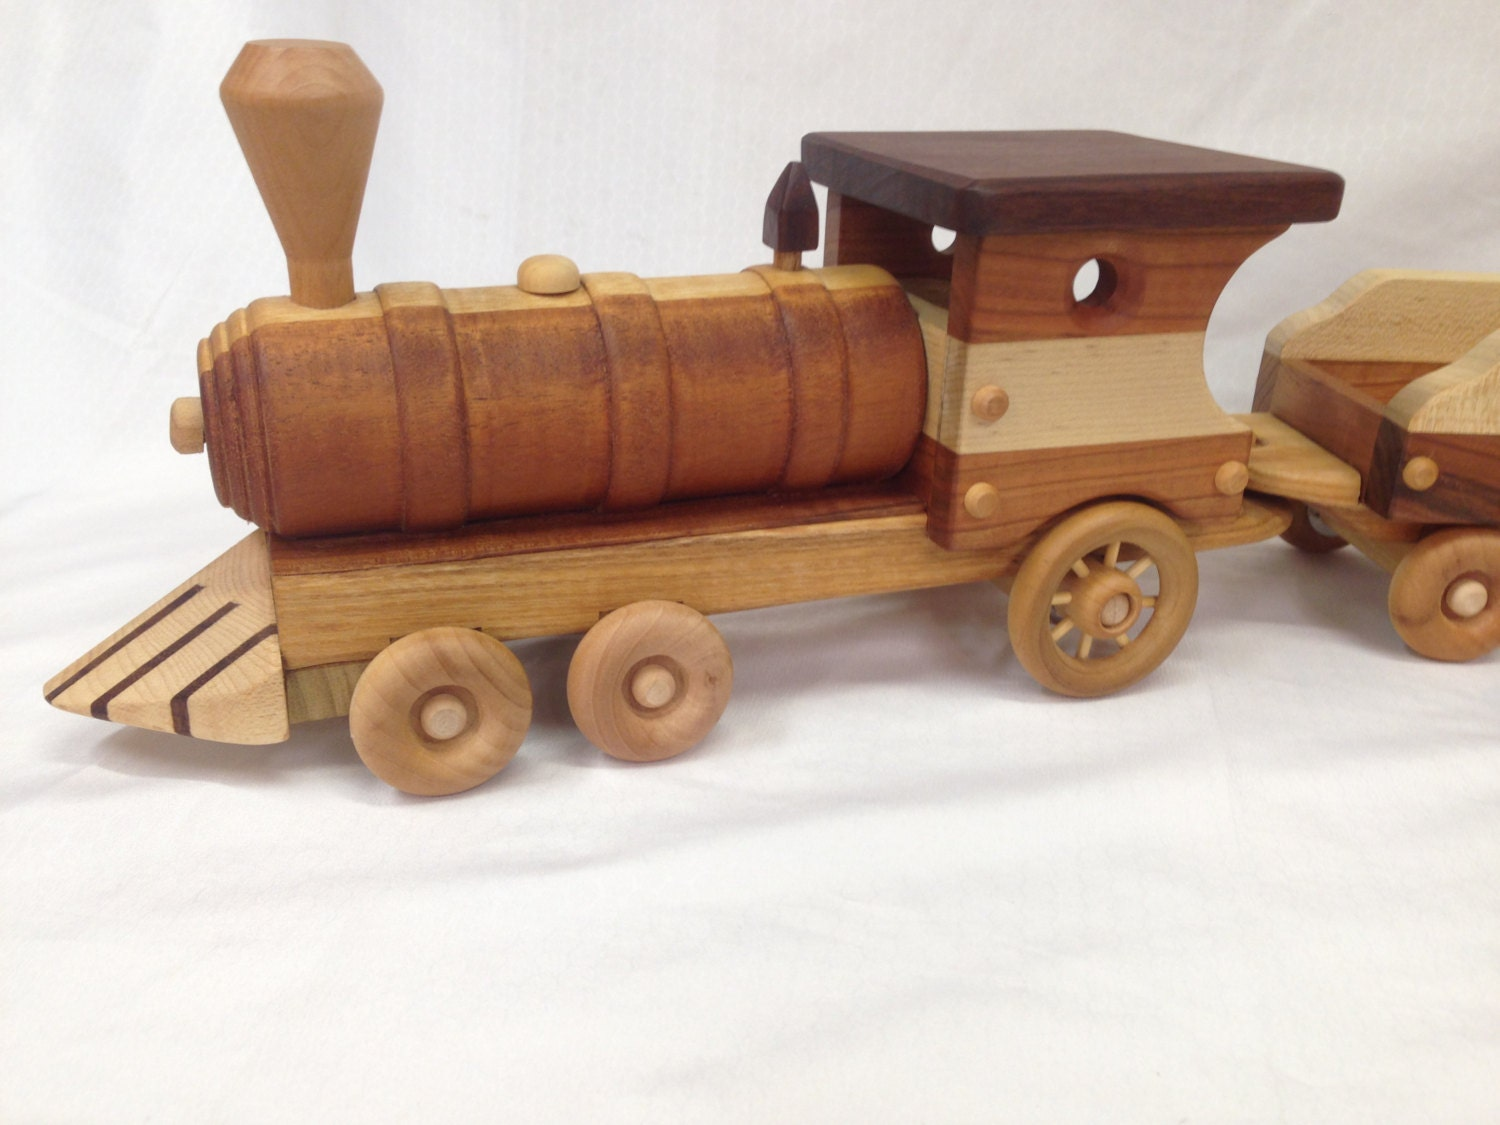 LARGE Train Set OVER 3' LONG Wooden Toy with Removable Lid